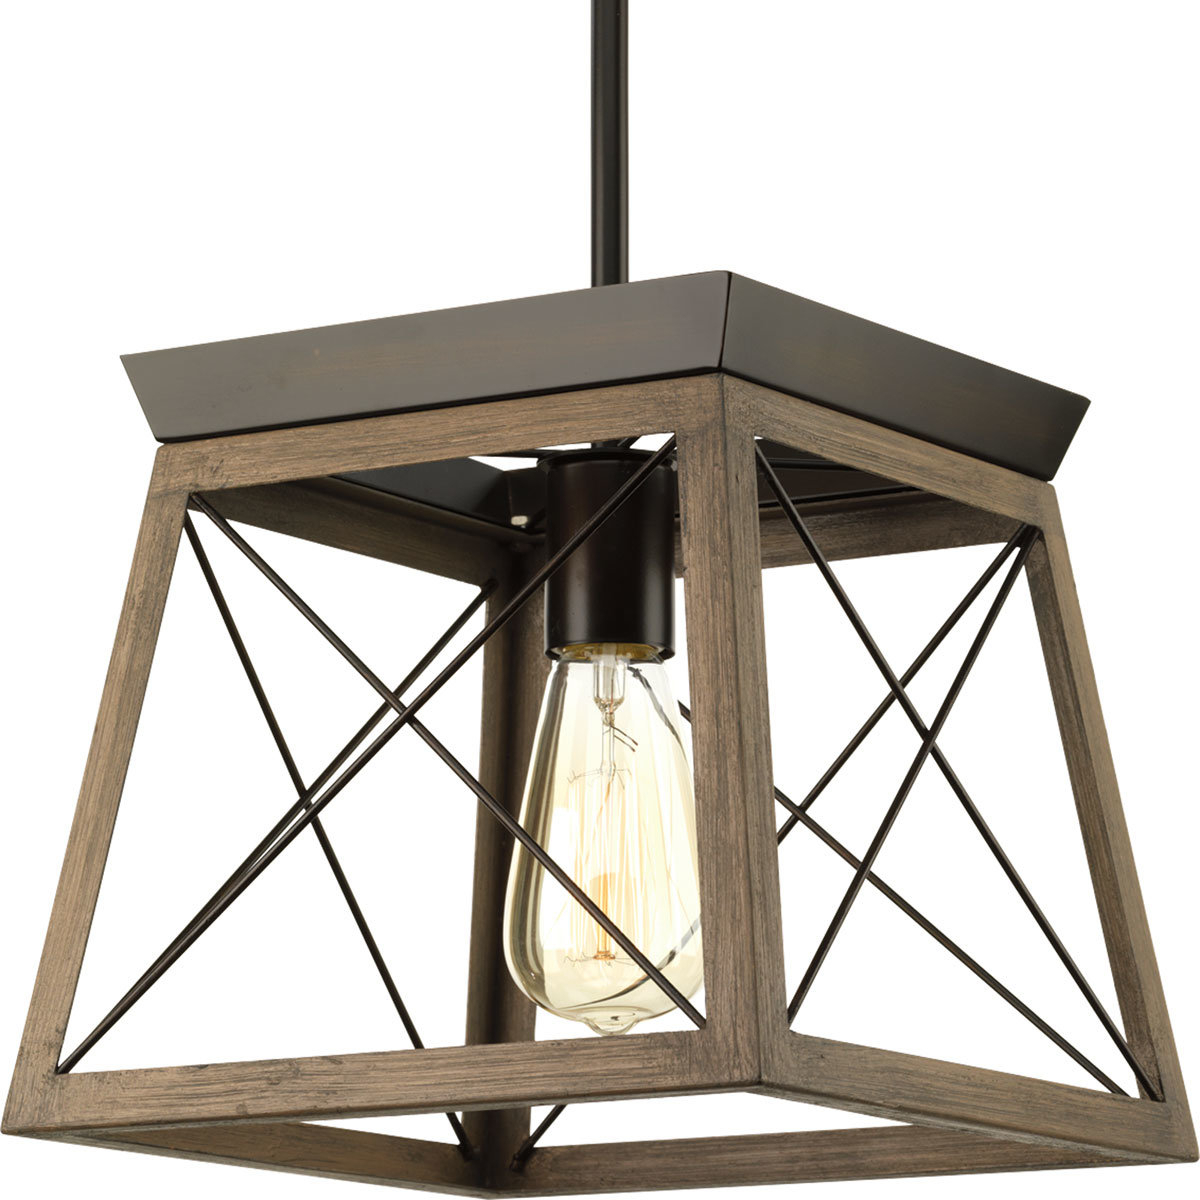 Delon 1-Light Lantern Geometric Pendant with regard to Fashionable Delon 1-Light Lantern Geometric Pendants